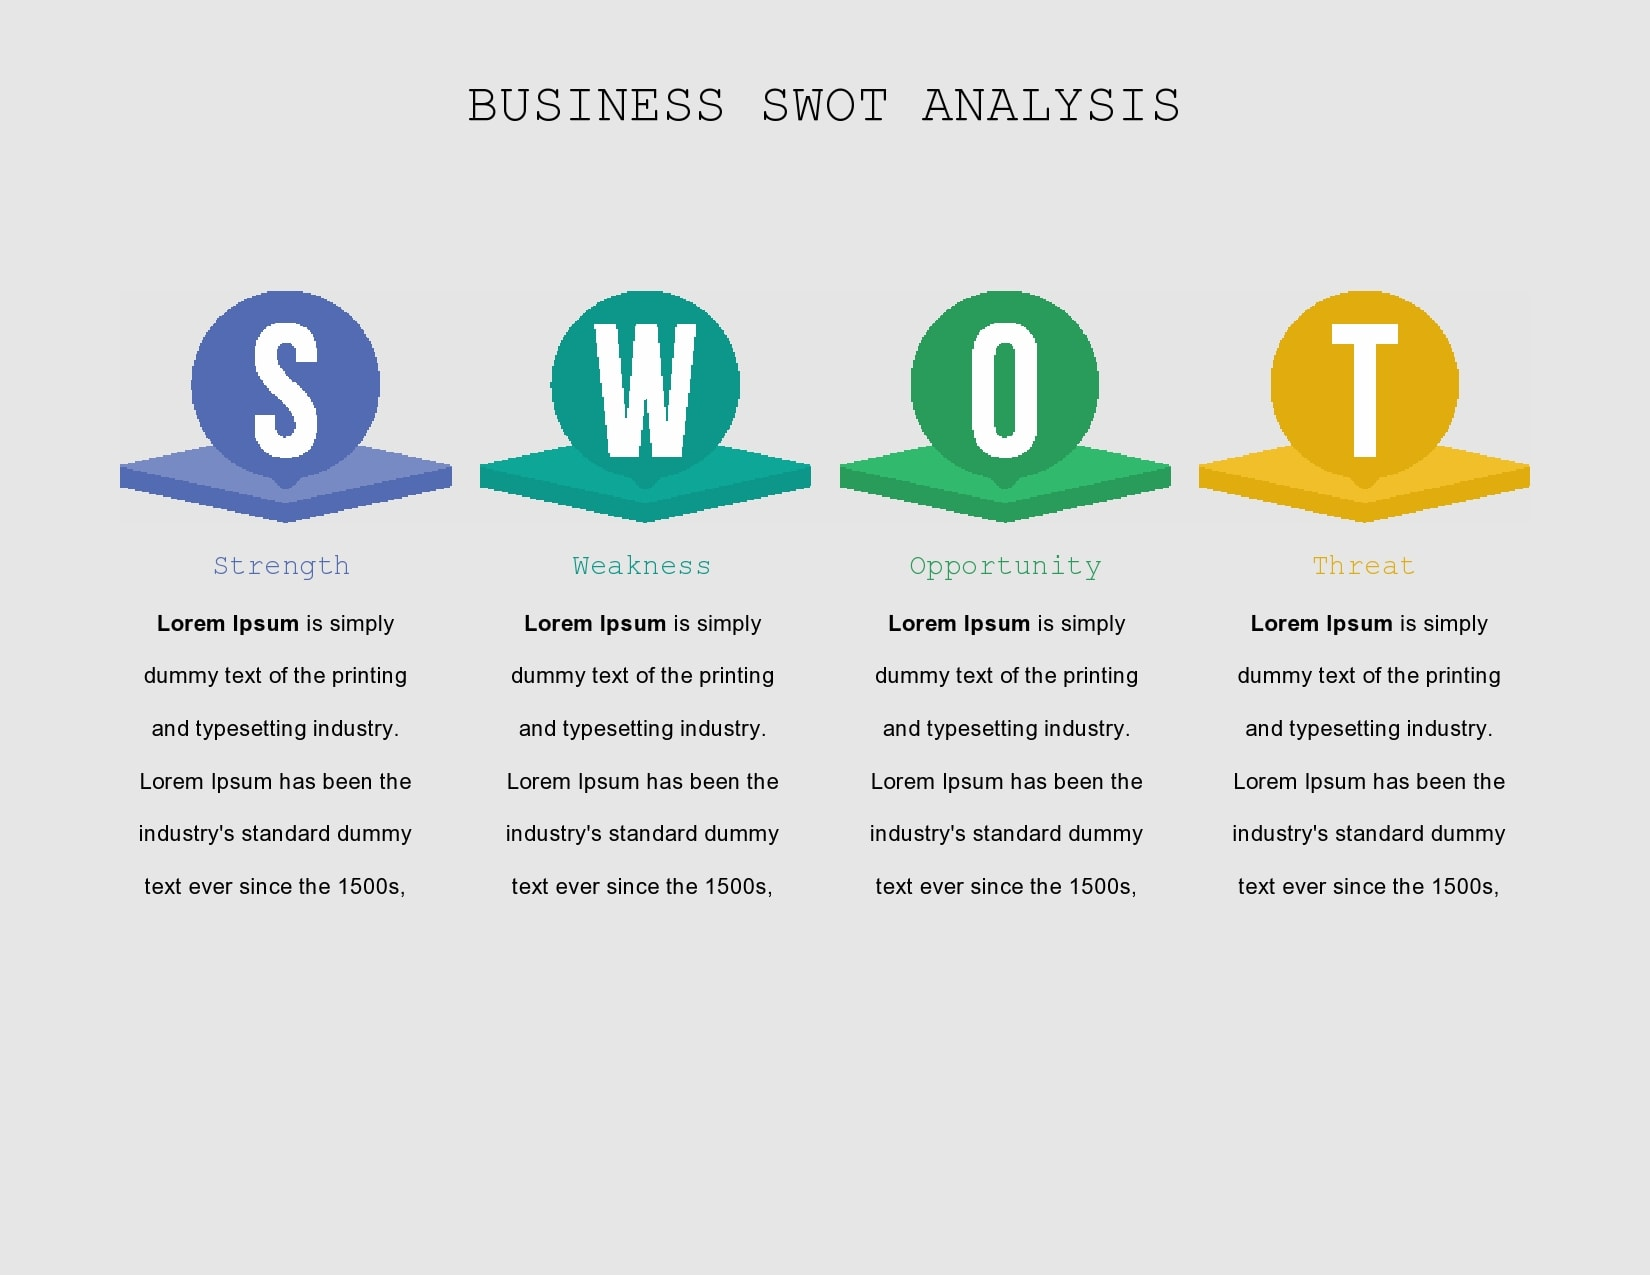 Swot Analysis Blank Template from templatearchive.com